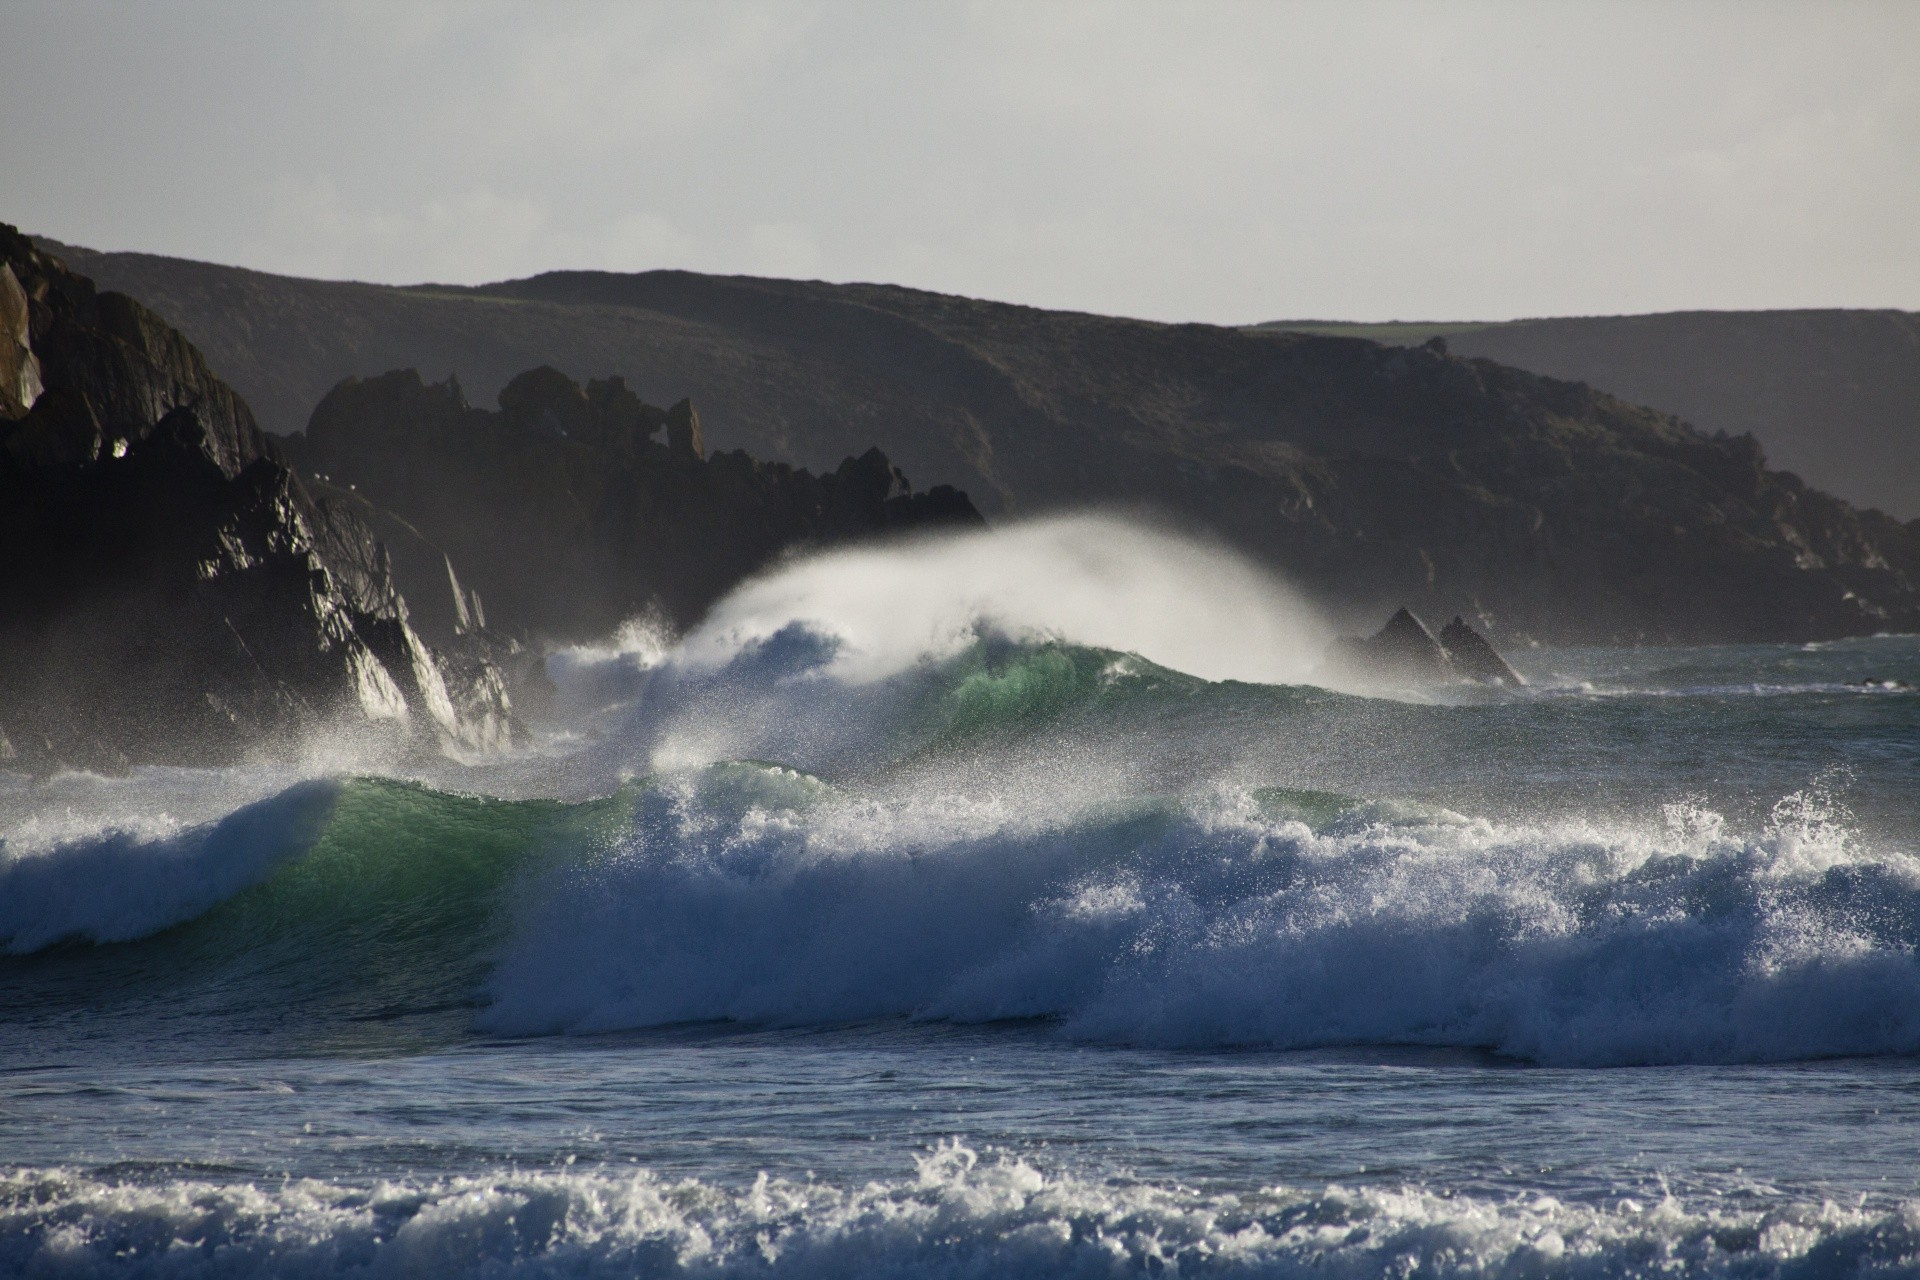 SeaSick Shots's photo of Praa Sands